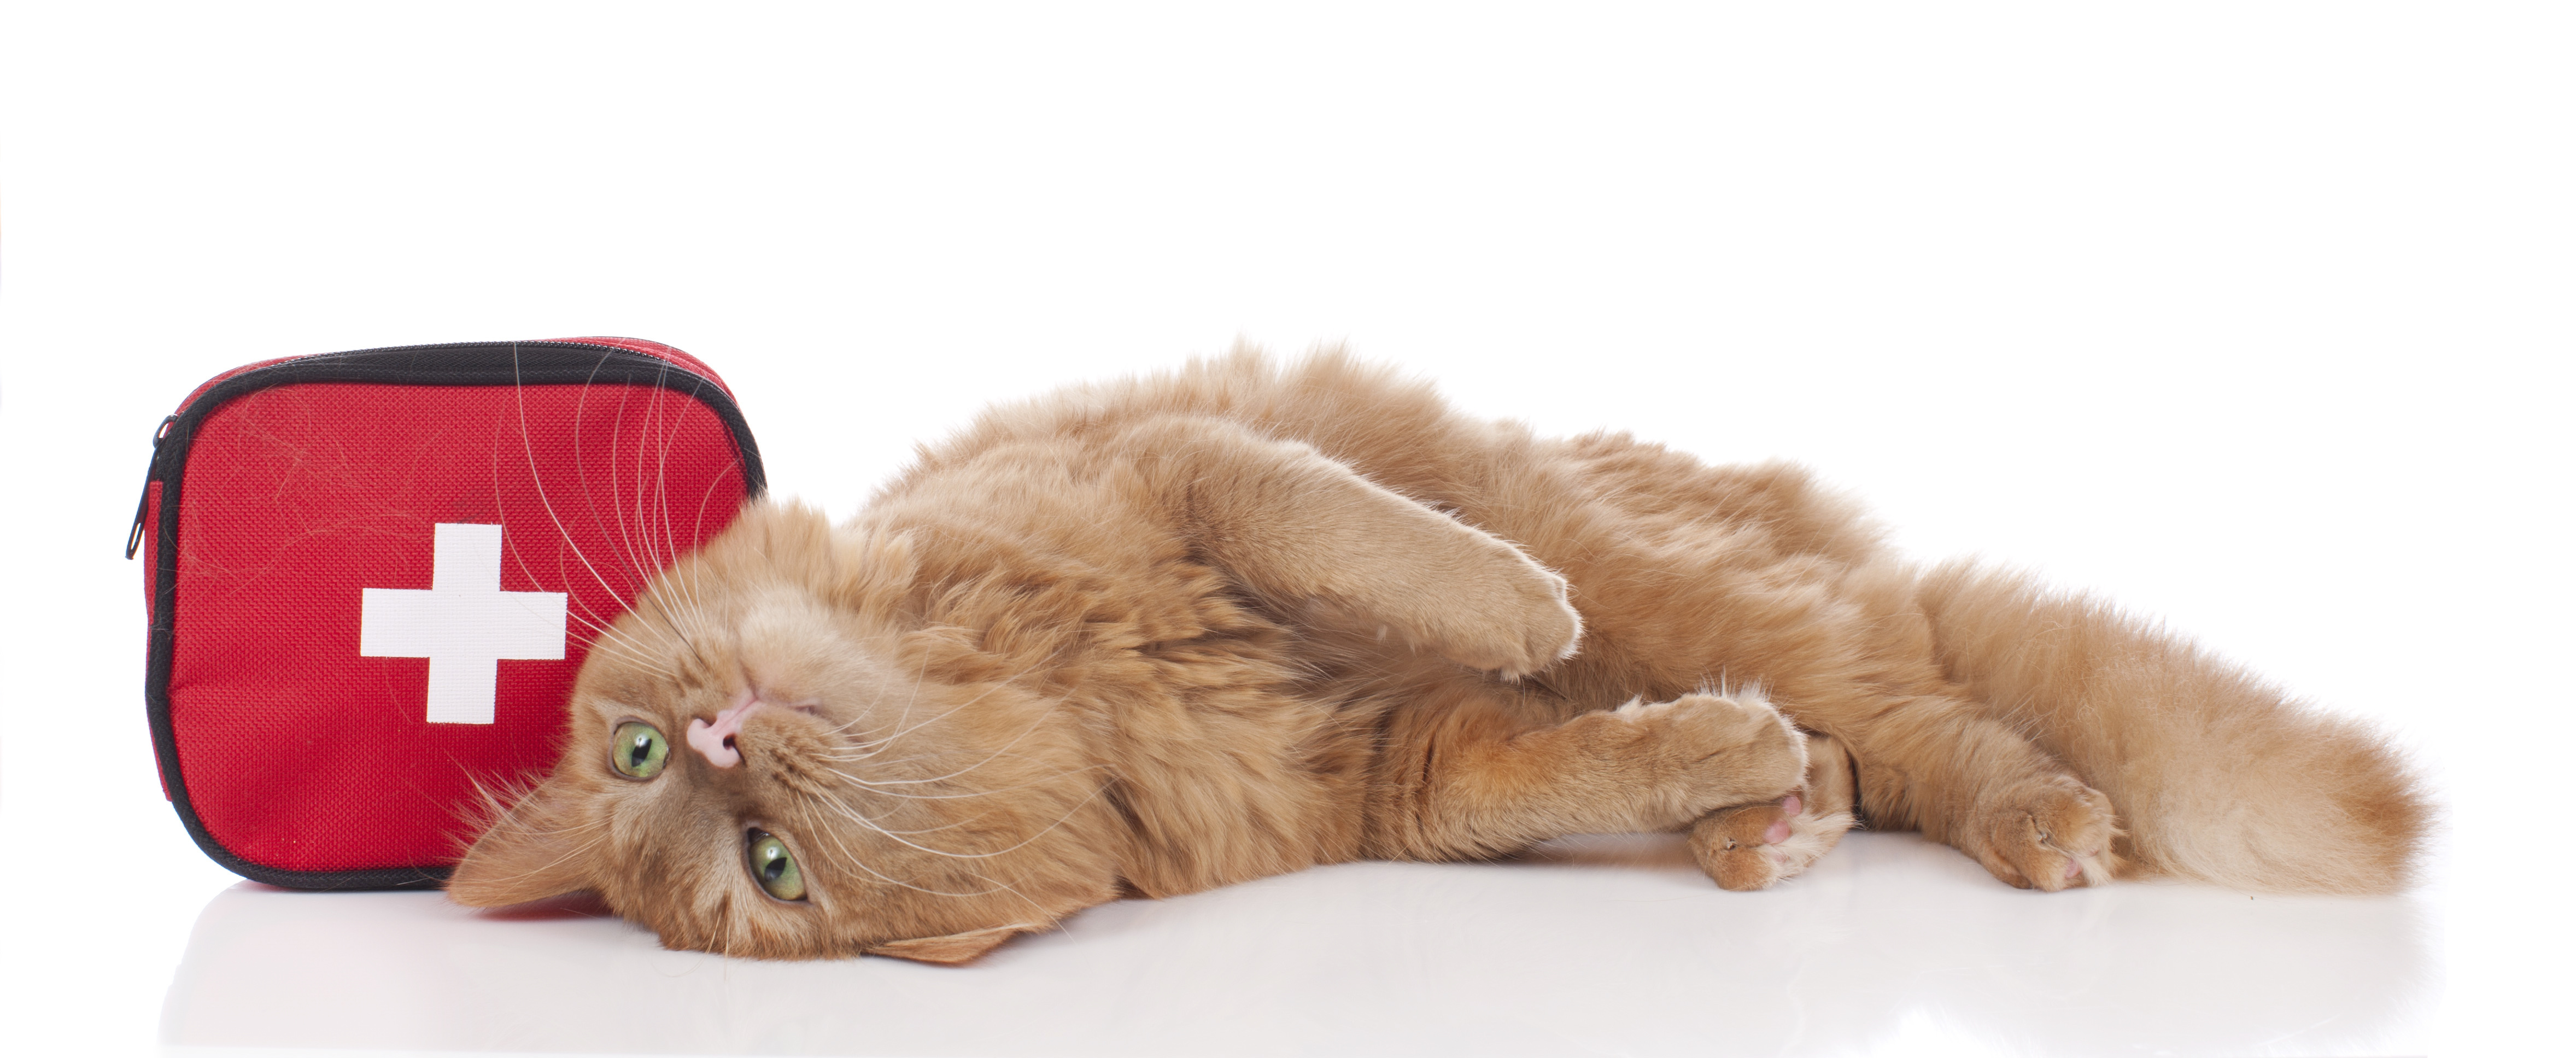 How Do You Prepare For A Cat Emergency When You Are Away?